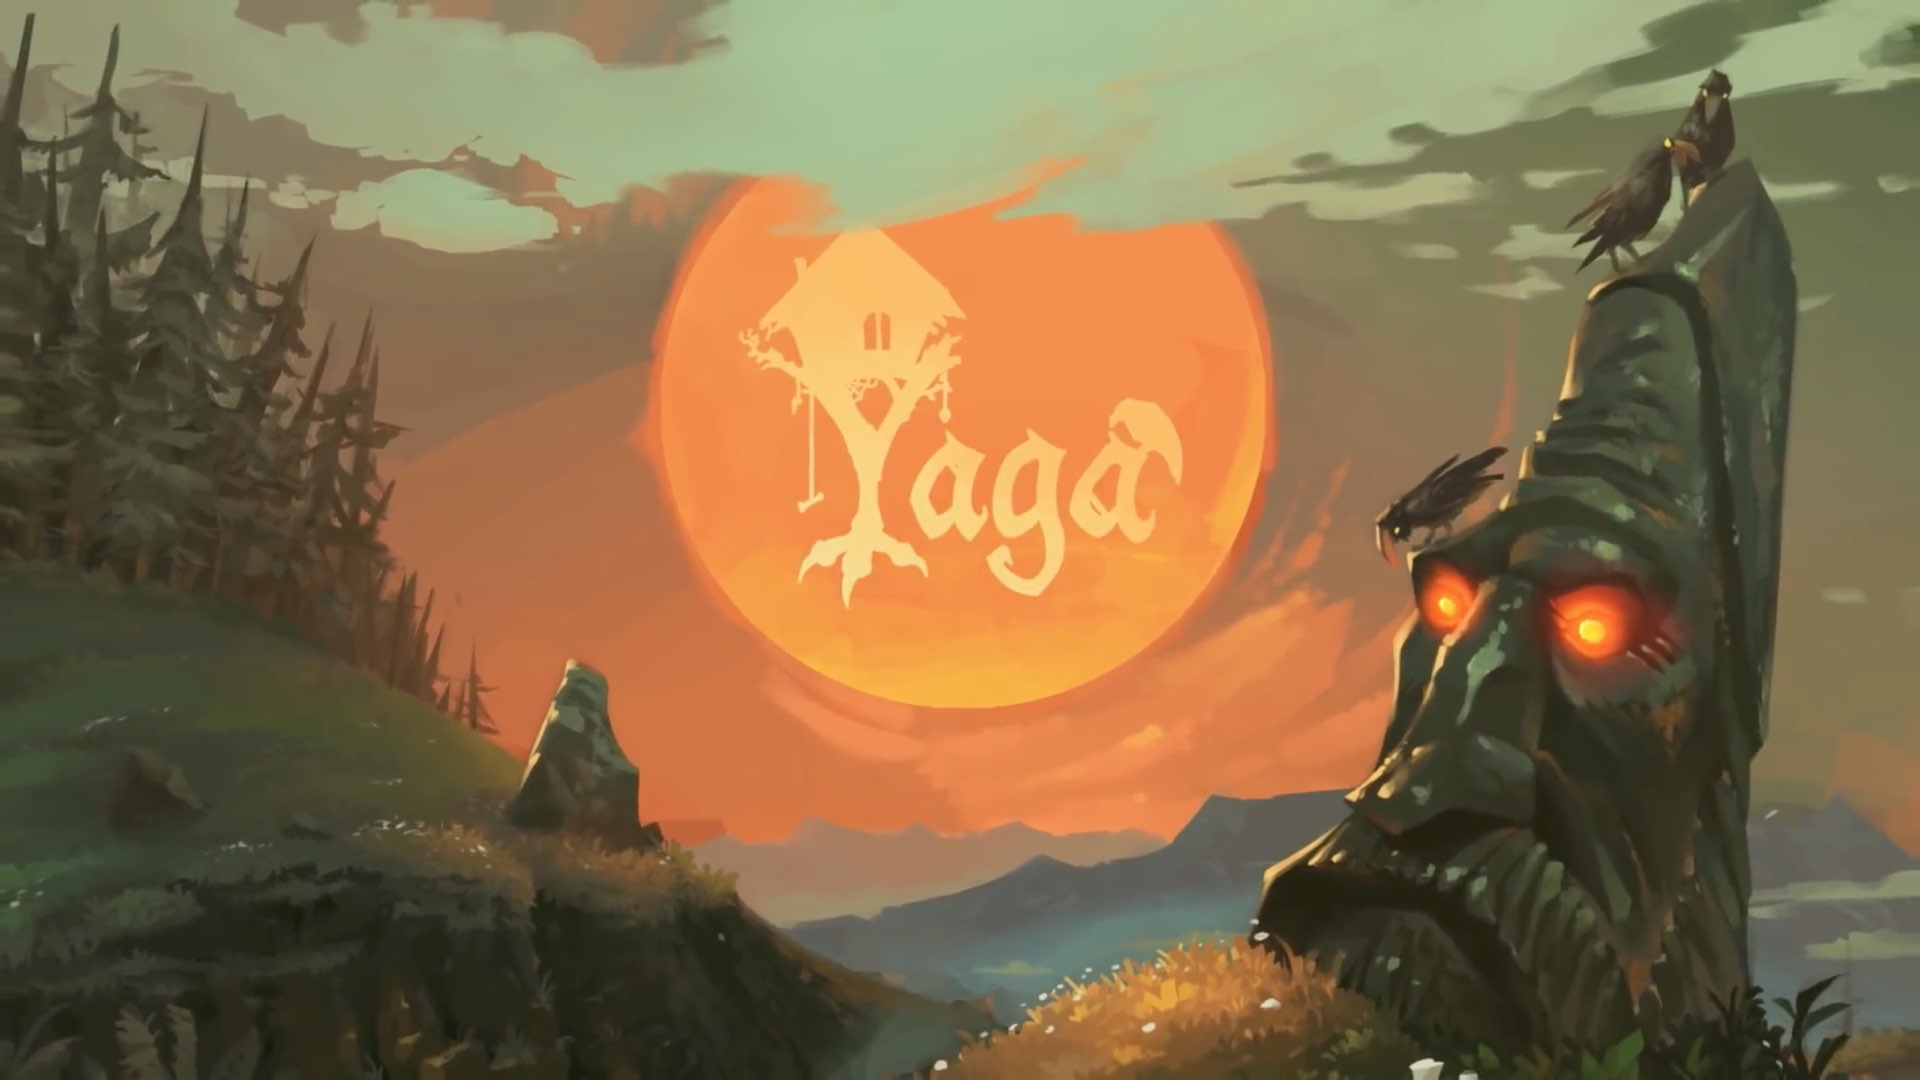 Apple Arcade shares the trailer for Yaga the Roleplaying Folktale